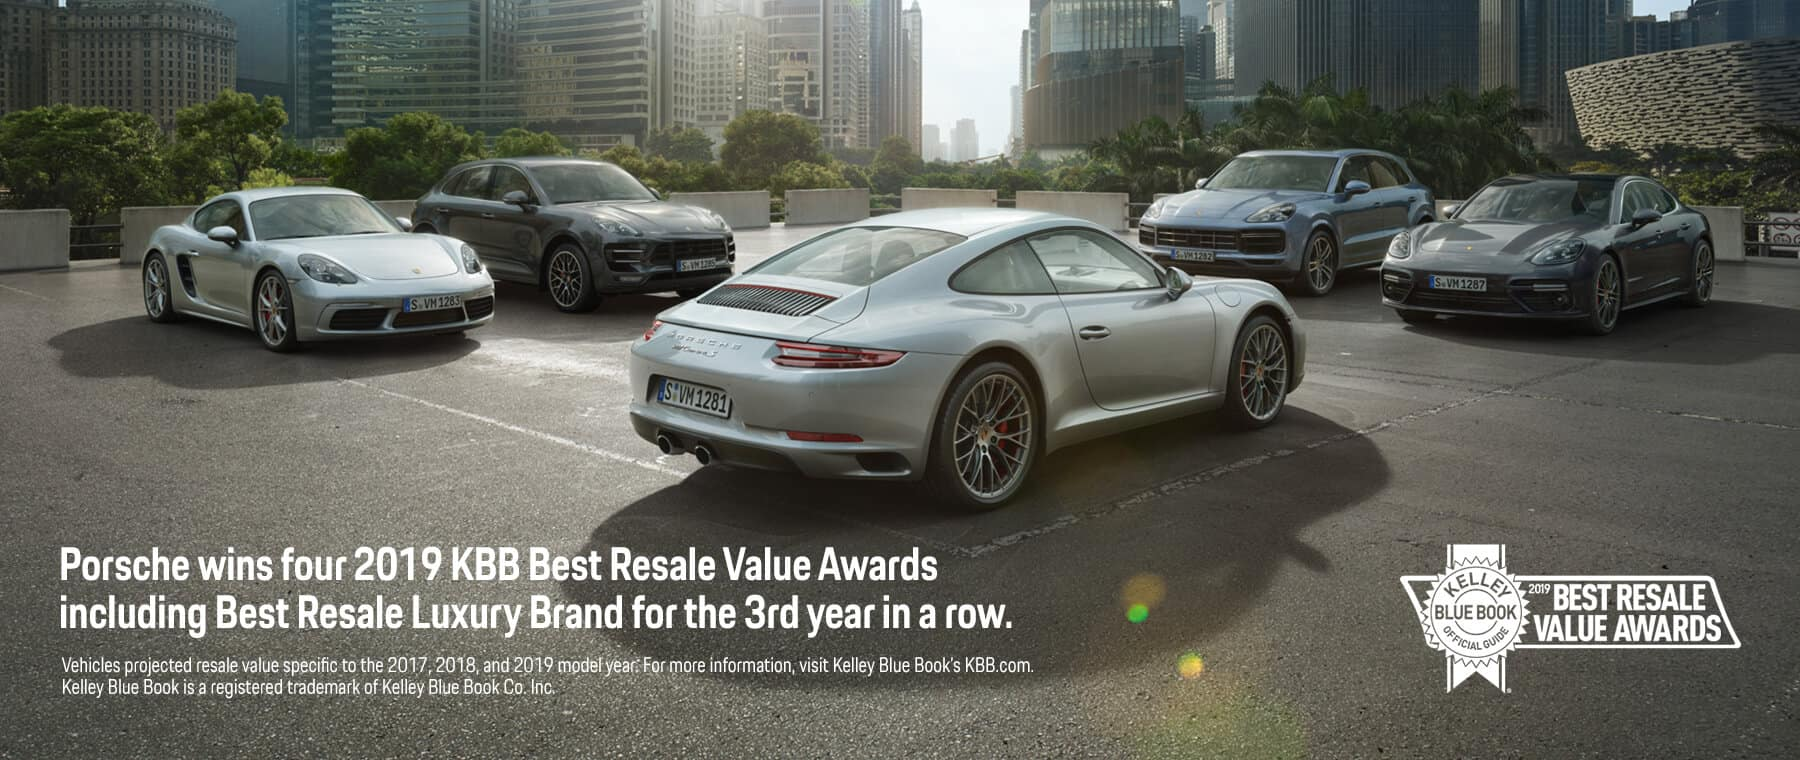 Ray Catena Porsche Luxury Car Dealer In Edison Nj